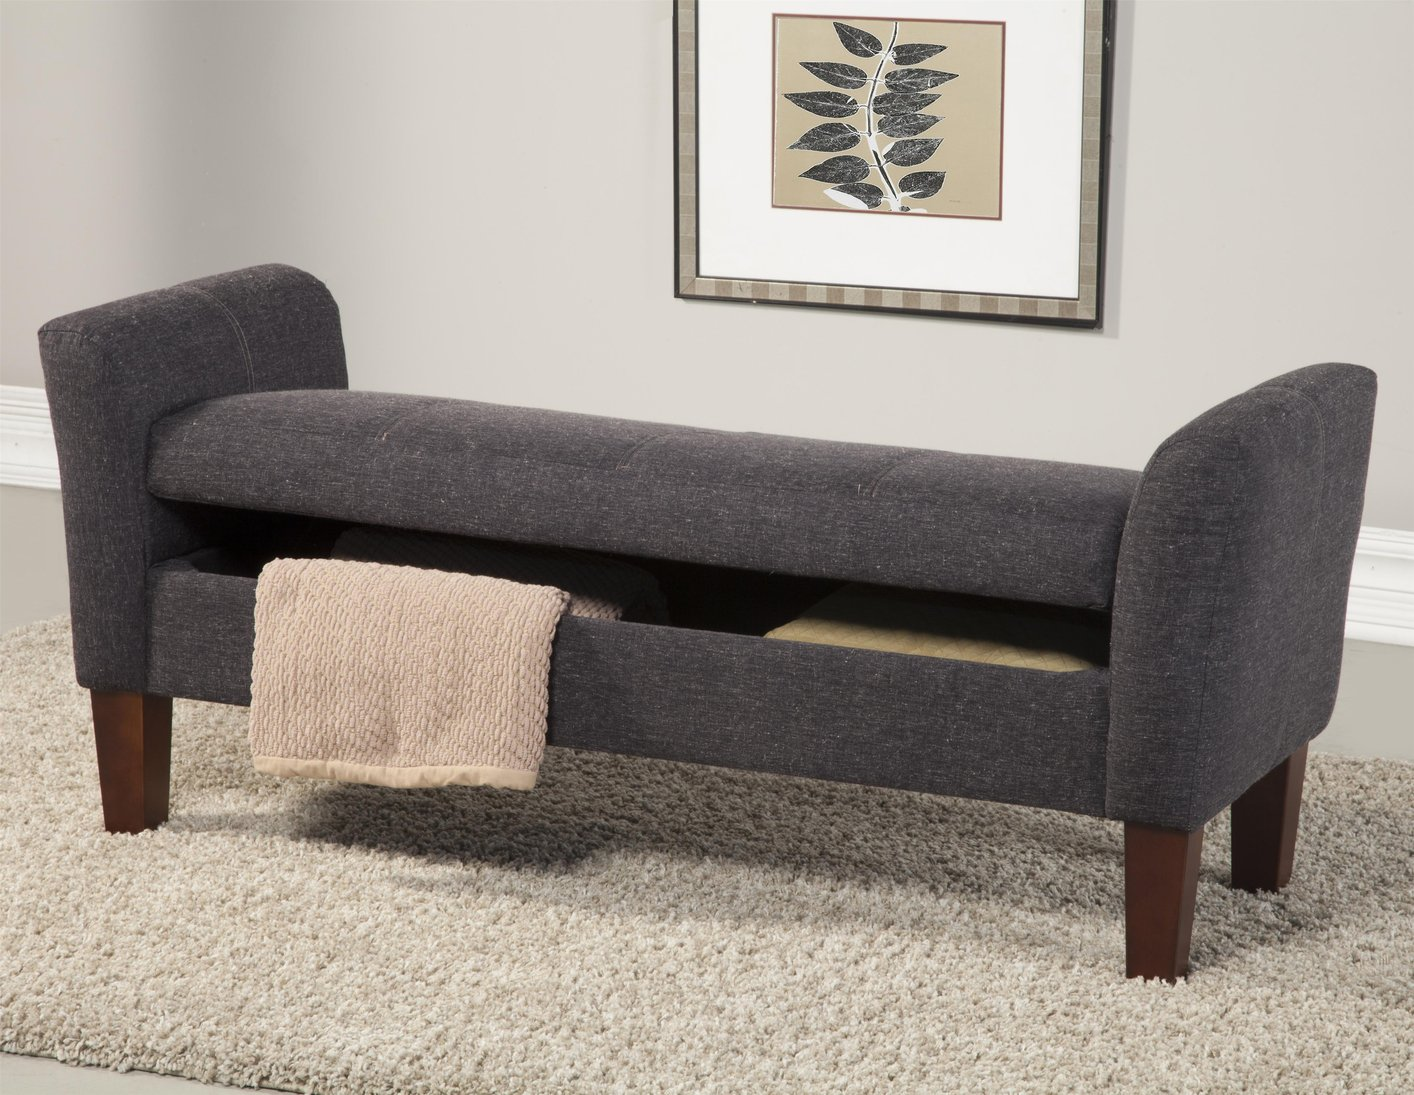 Bedroom bench with arms - Grey Fabric Storage Bench